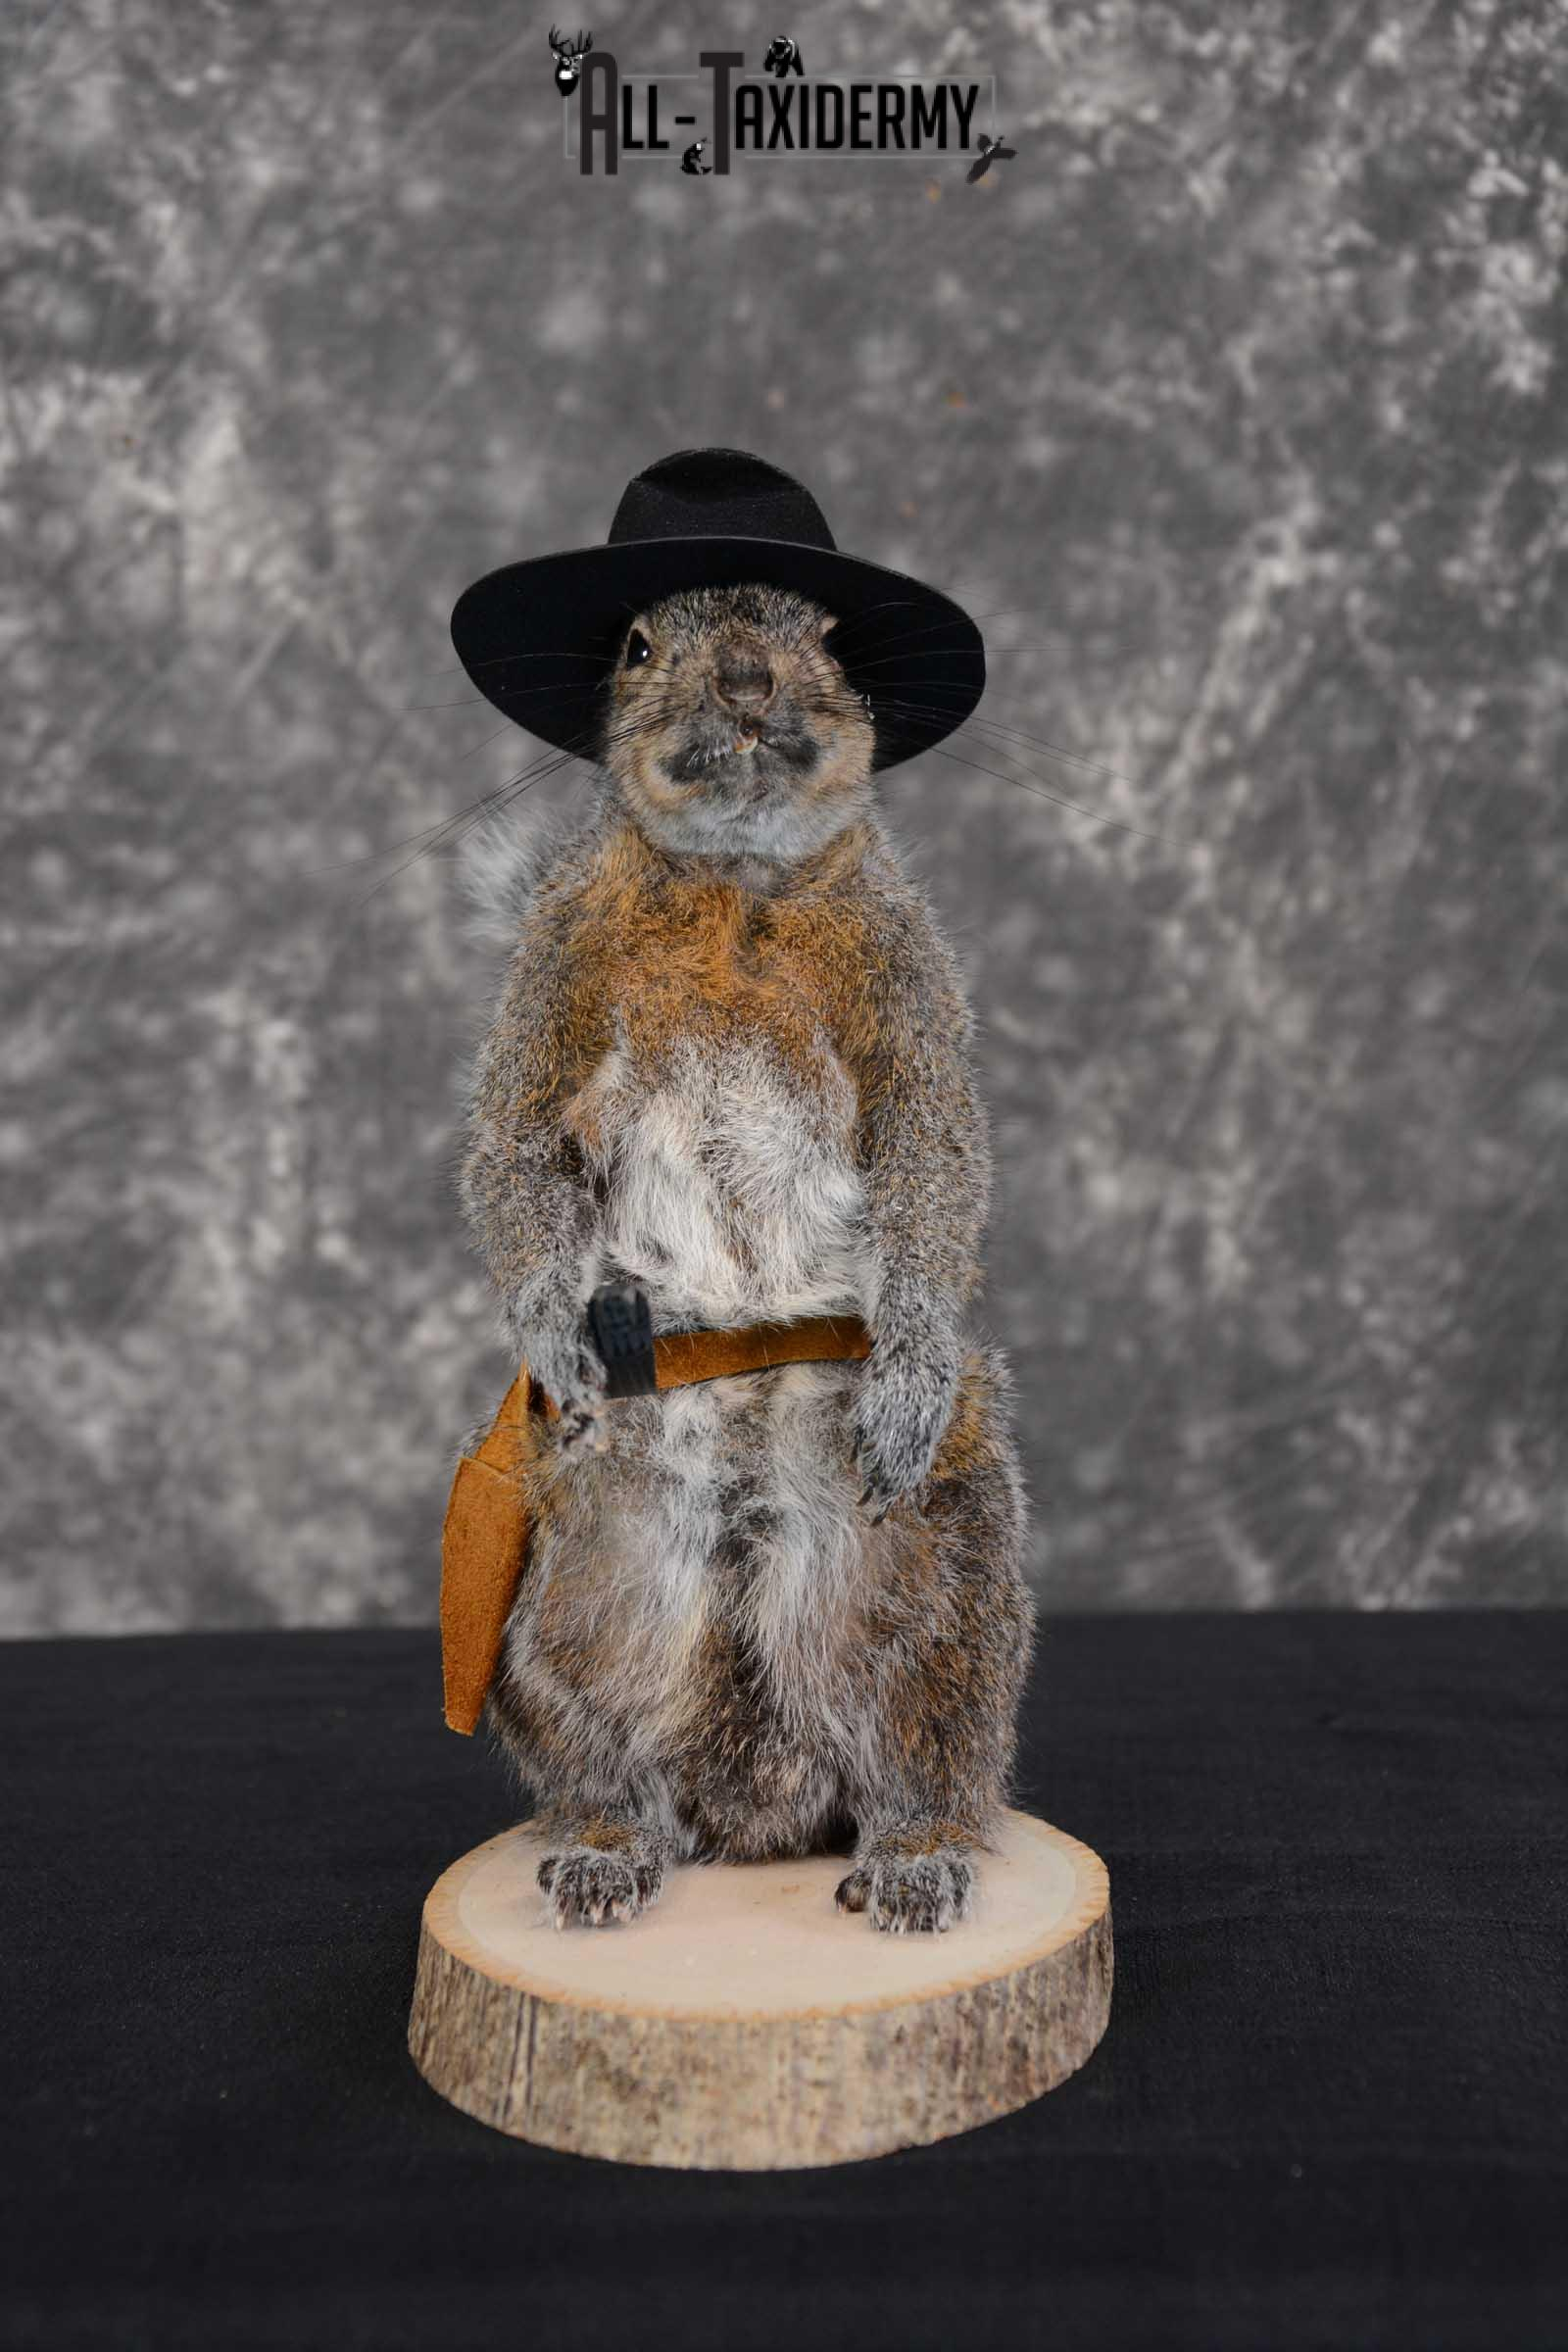 Gray Squirrel taxidermy cowboy novelty for sale SKU 1635